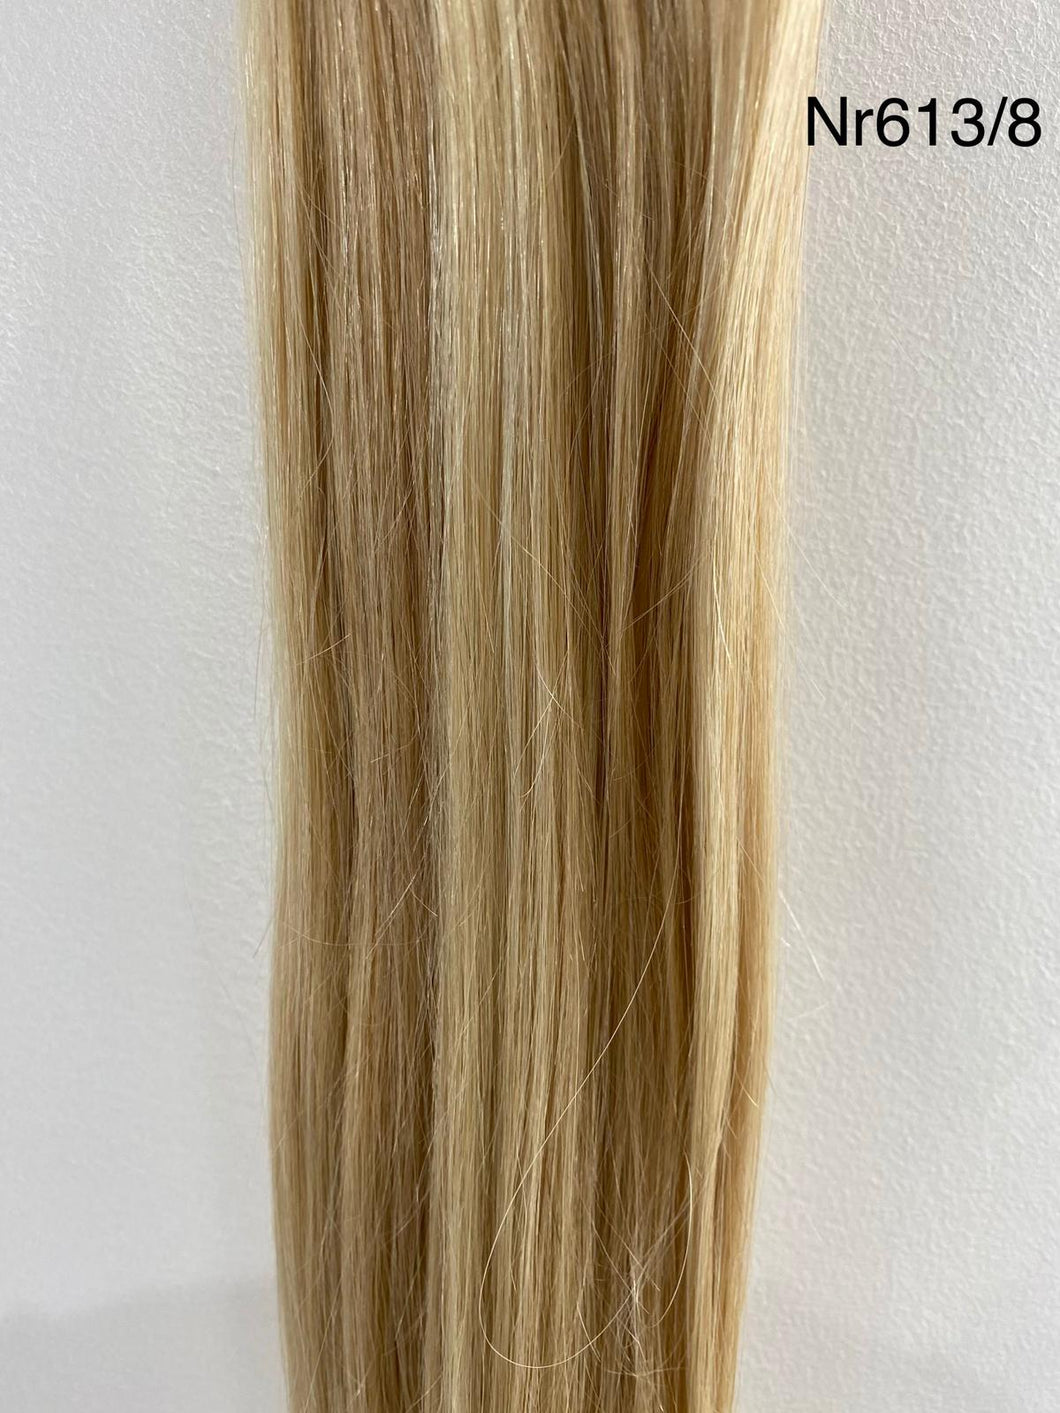 Clip-in Hairextension 100% echt haar #613/8 - LASIDORE Beauty Bar